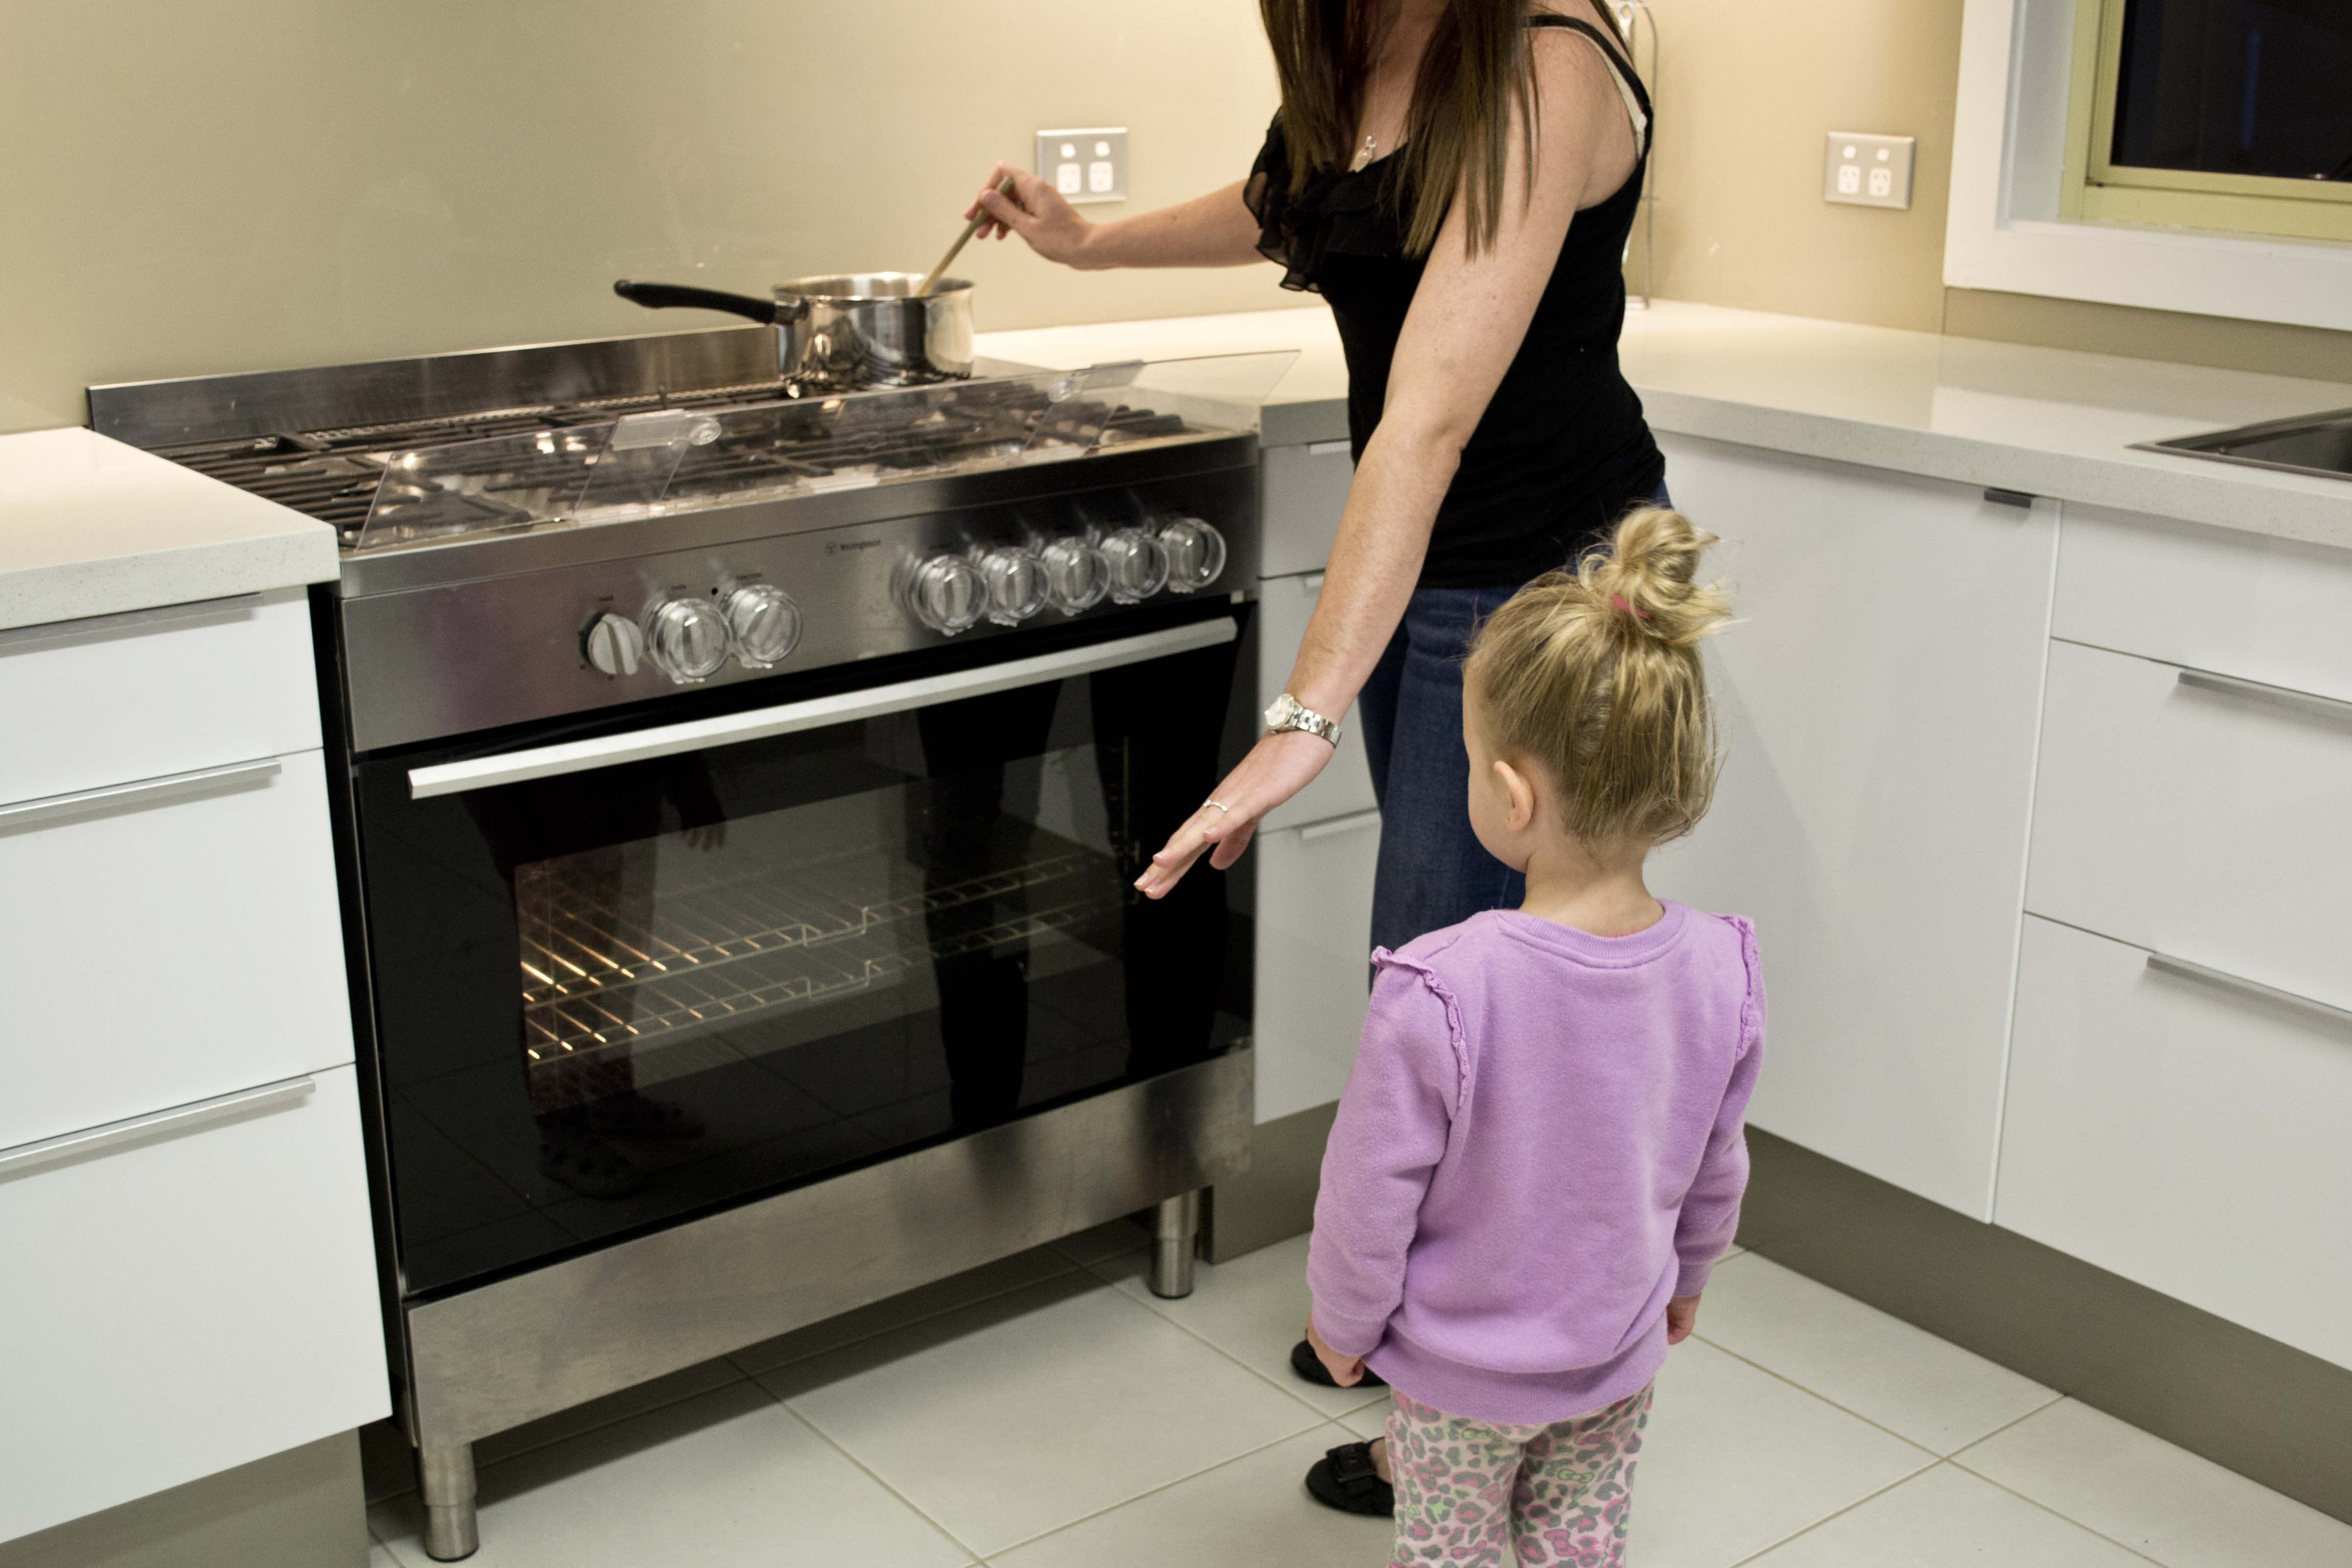 Our Top 10 Tips For Safety In The Kitchen